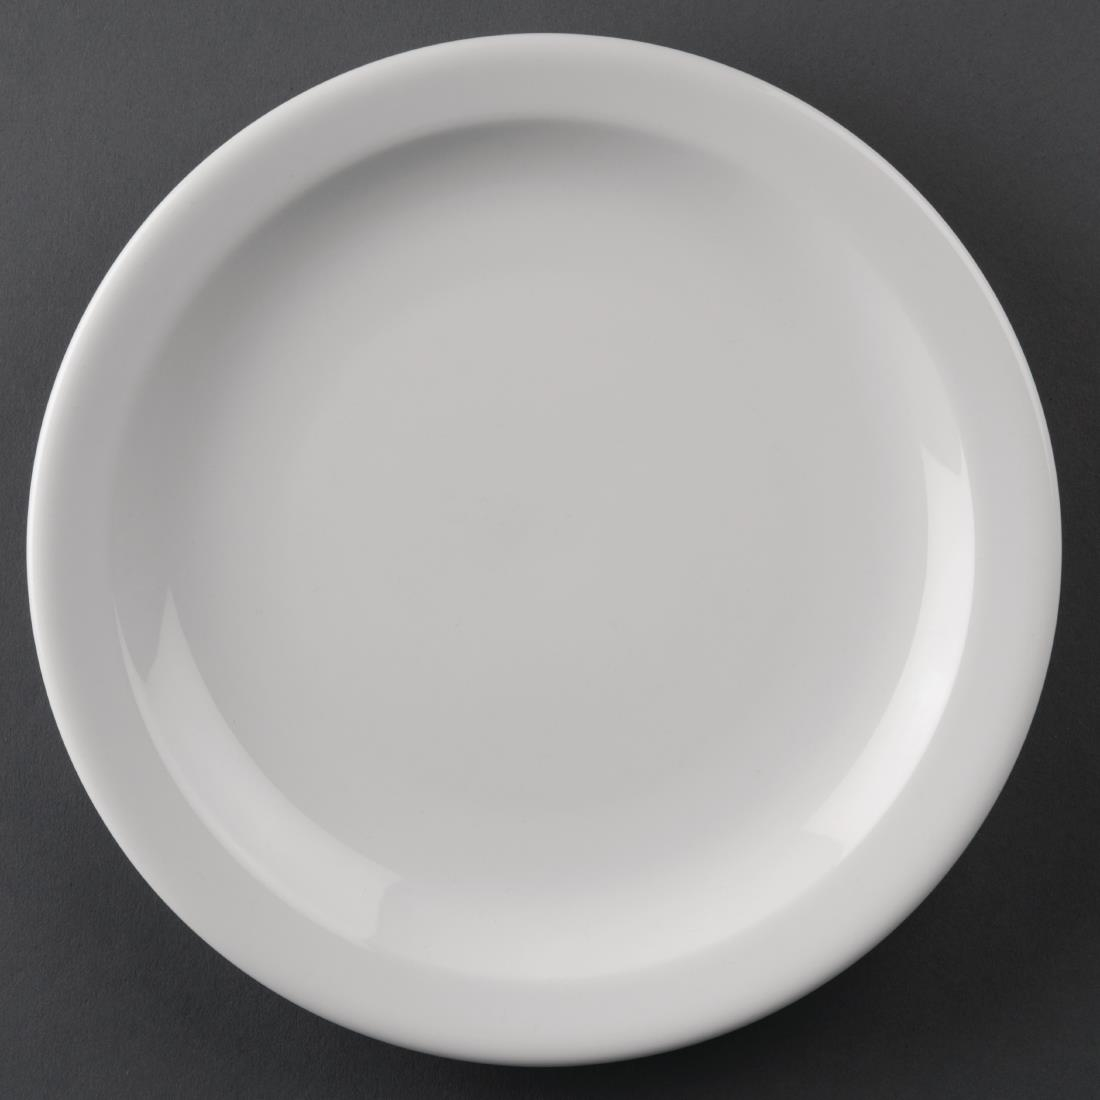 Image of Athena Hotelware Narrow Rimmed Plates 205mm (Pack of 12) Pack of 12